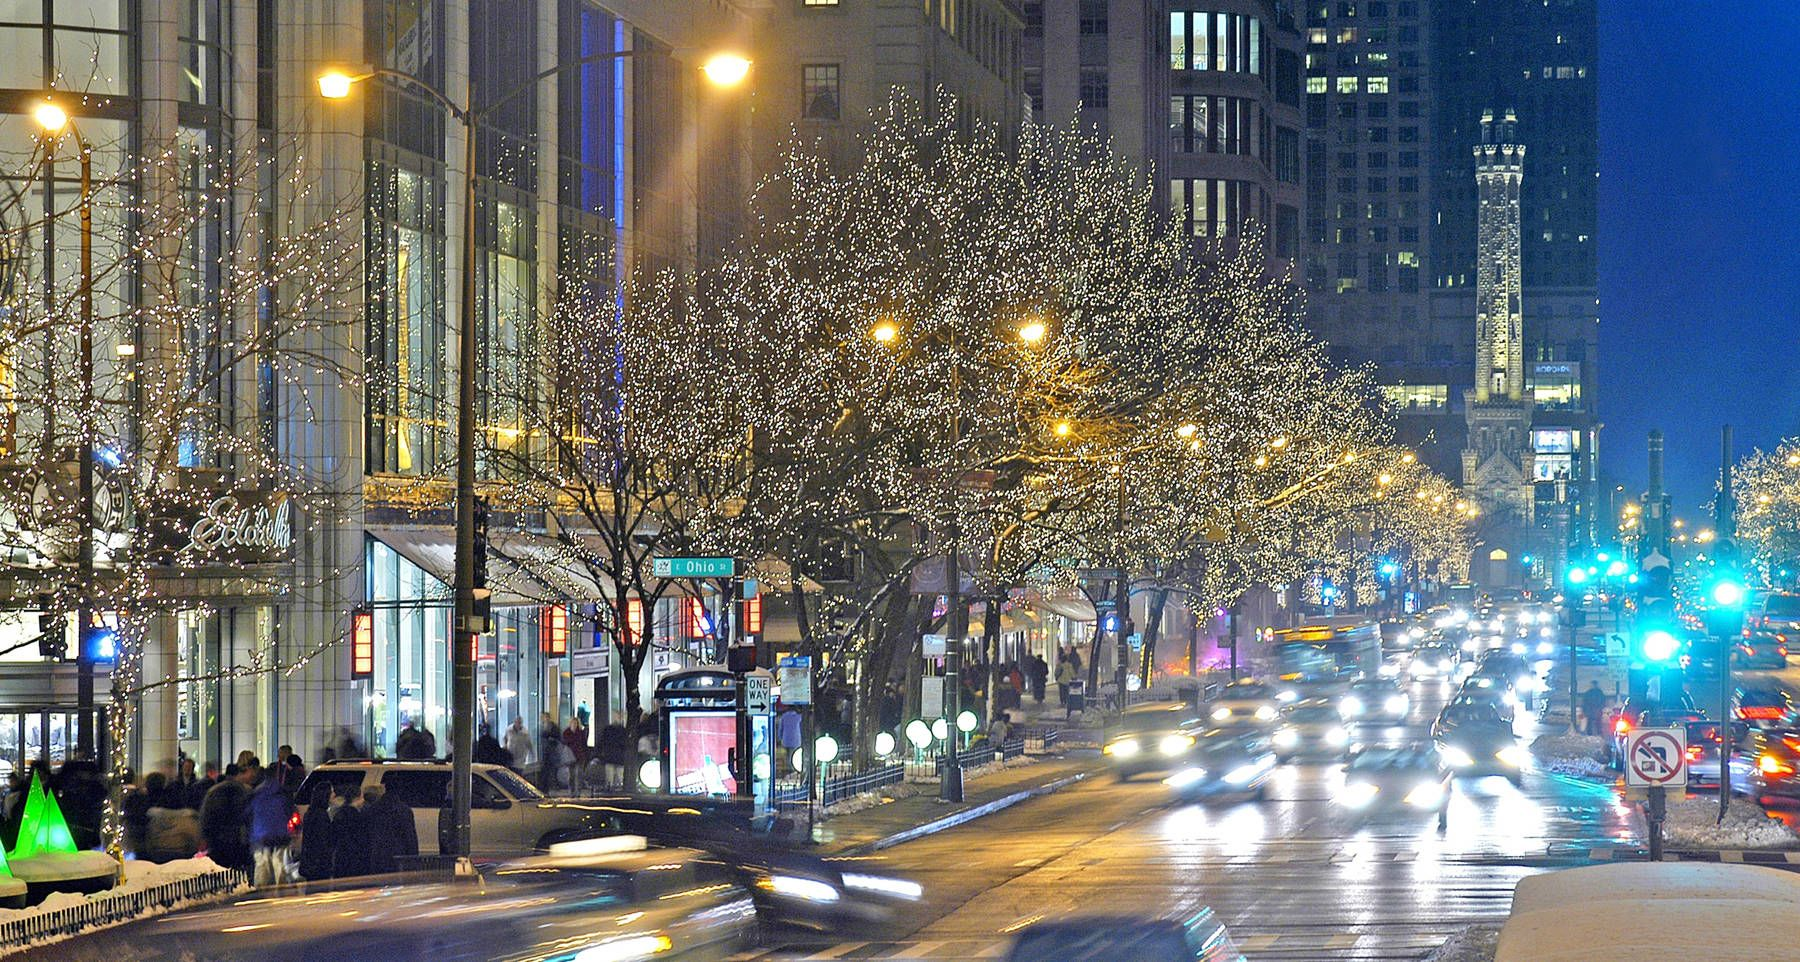 magnificent mile chicago holidaystyle christmas events holidays events chicago christmas christmas